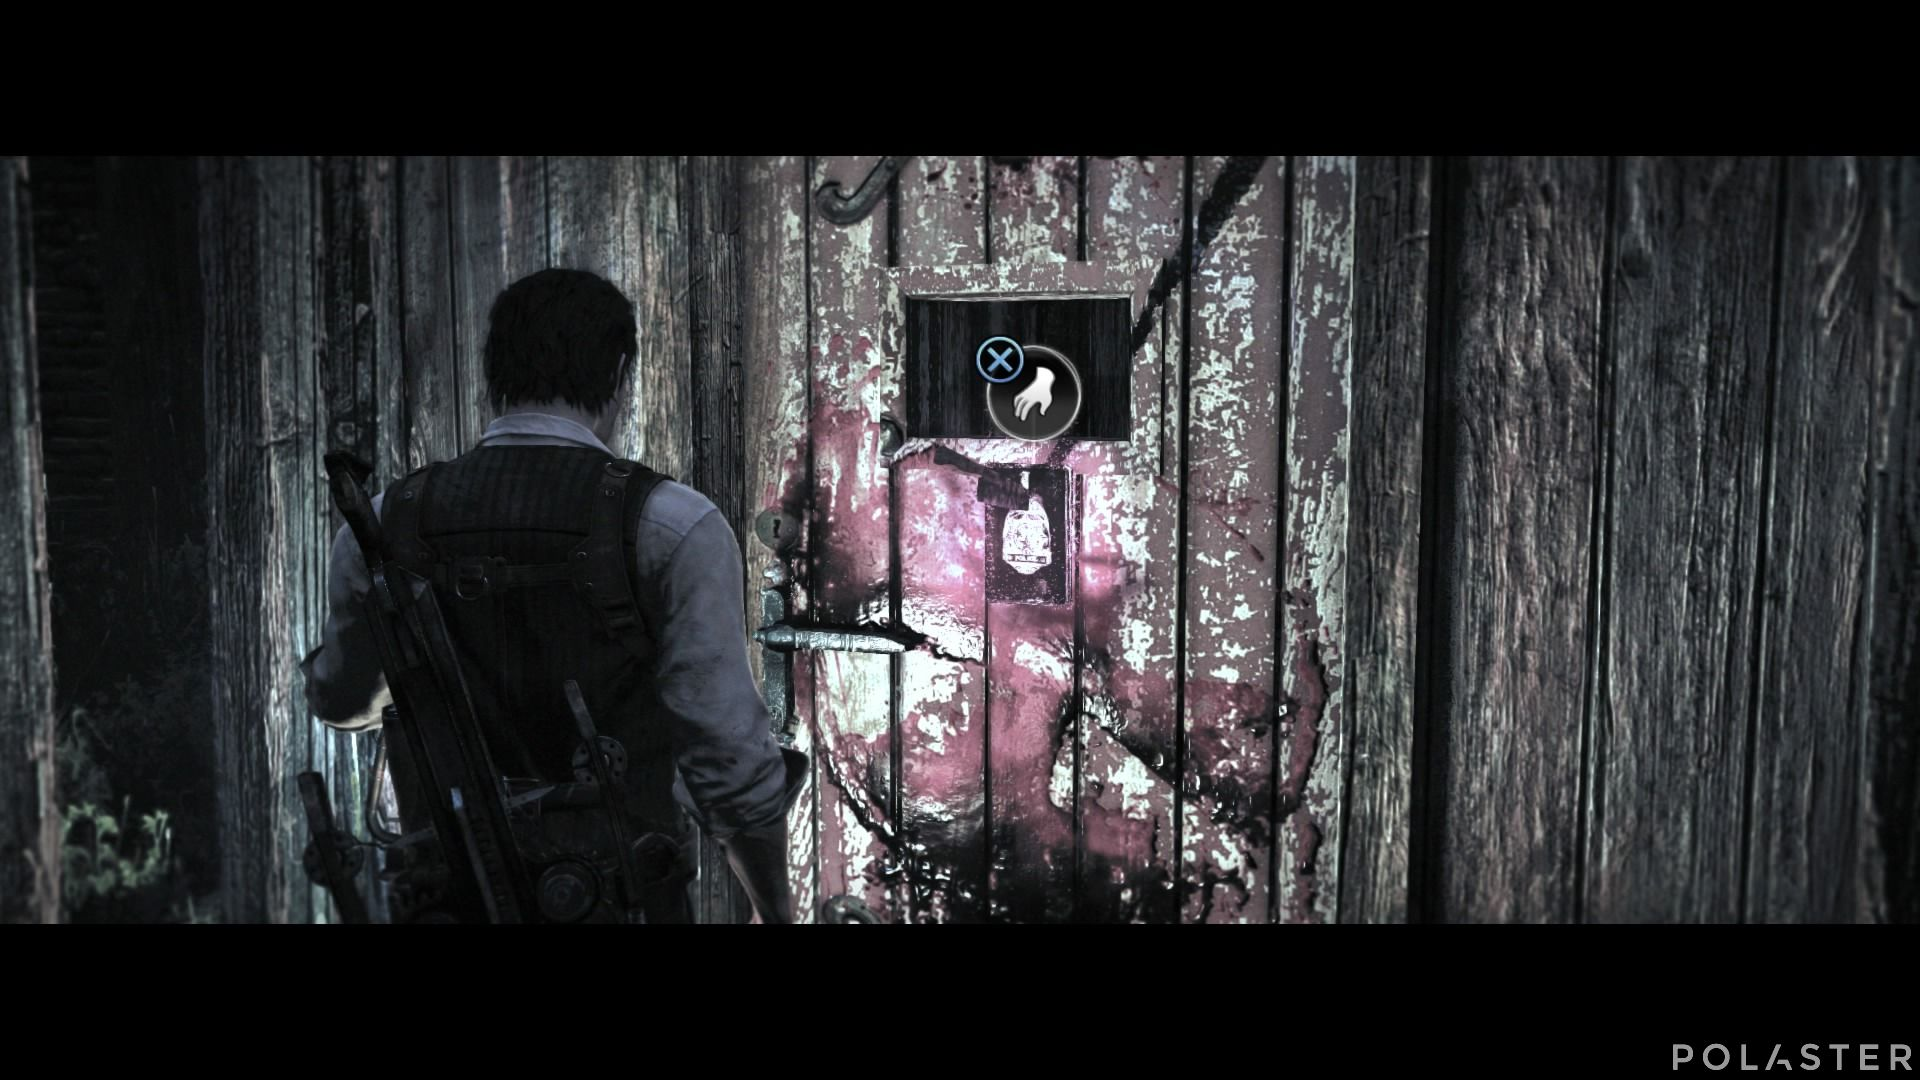 The Evil Within - Coleccionables - Documento personal: Entrada del diario - Febrero de 2005